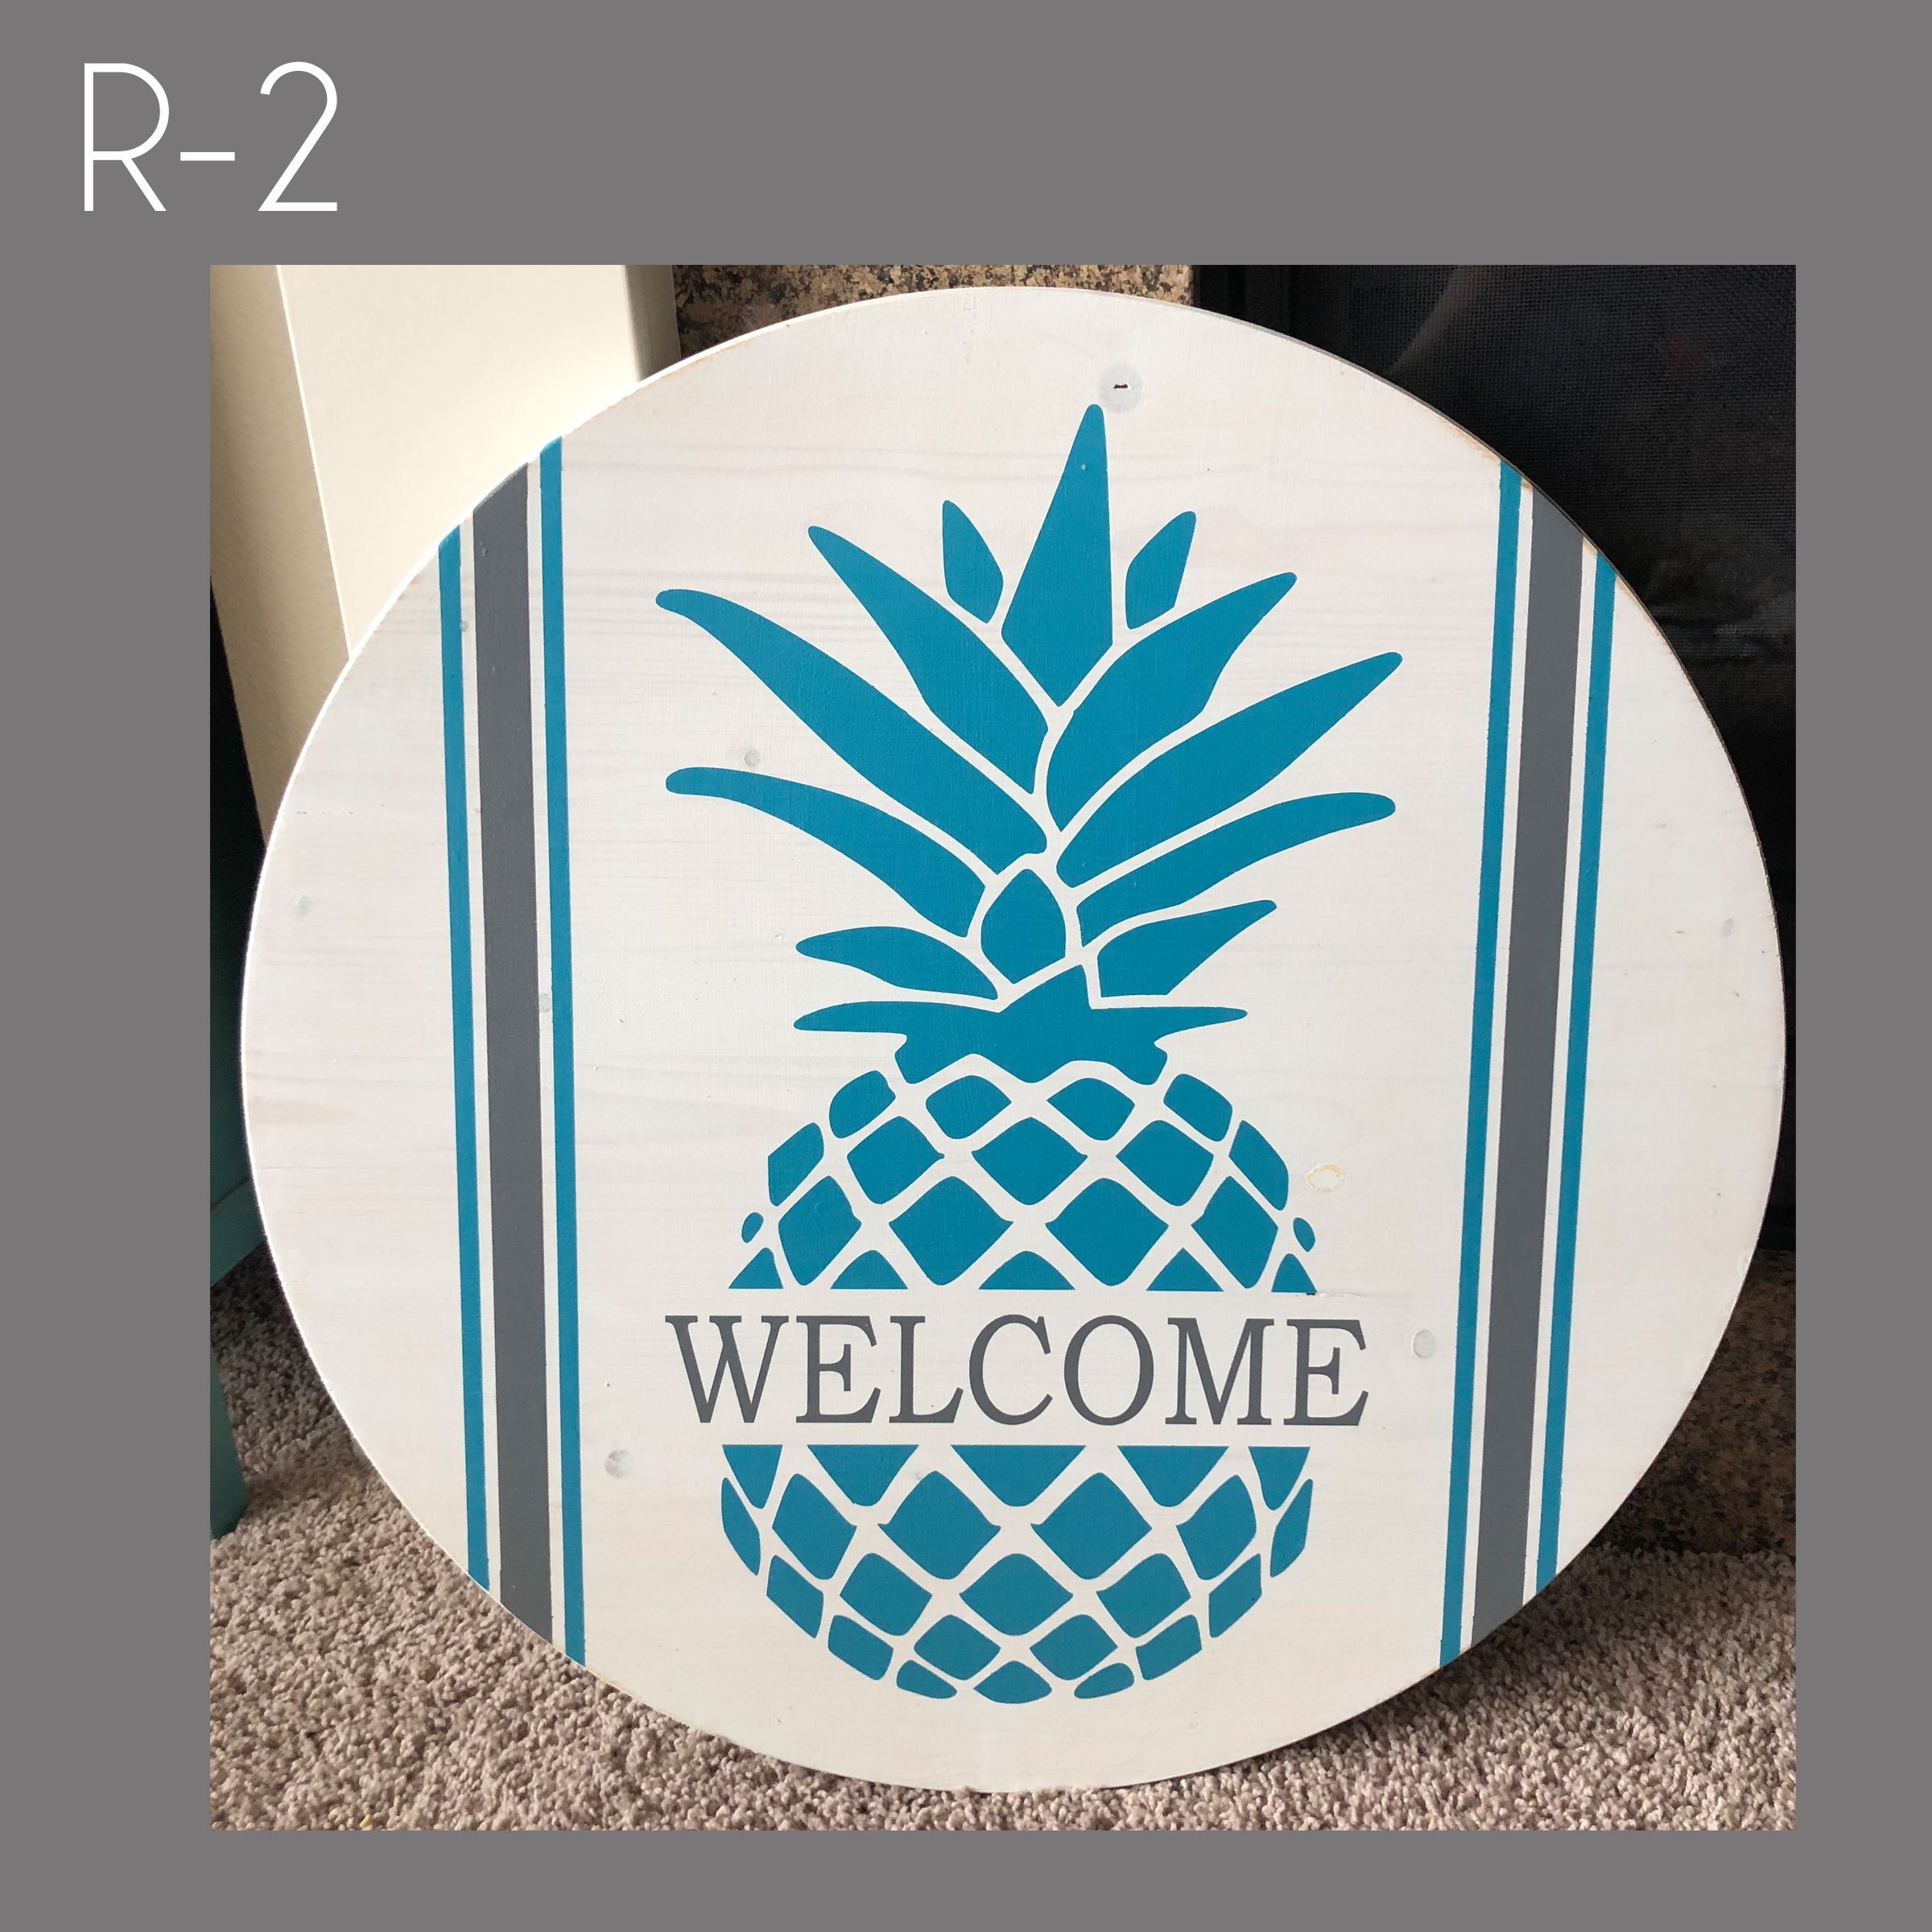 R2 - Welcome Pineapple.jpg